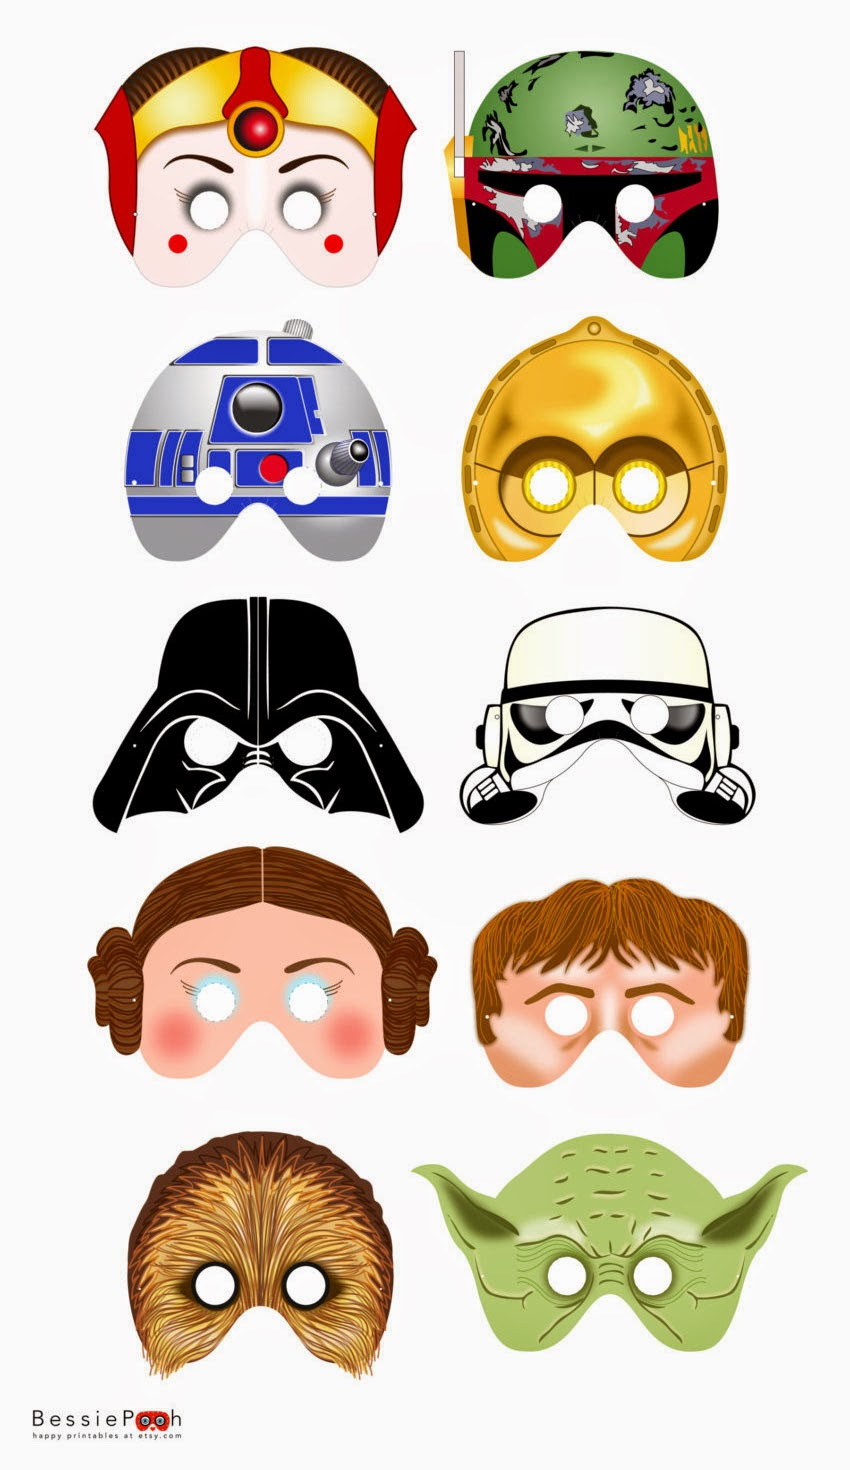 image regarding Star Wars Printable Masks referred to as Star Wars Free of charge Printable Masks. - Oh My Fiesta! within just english